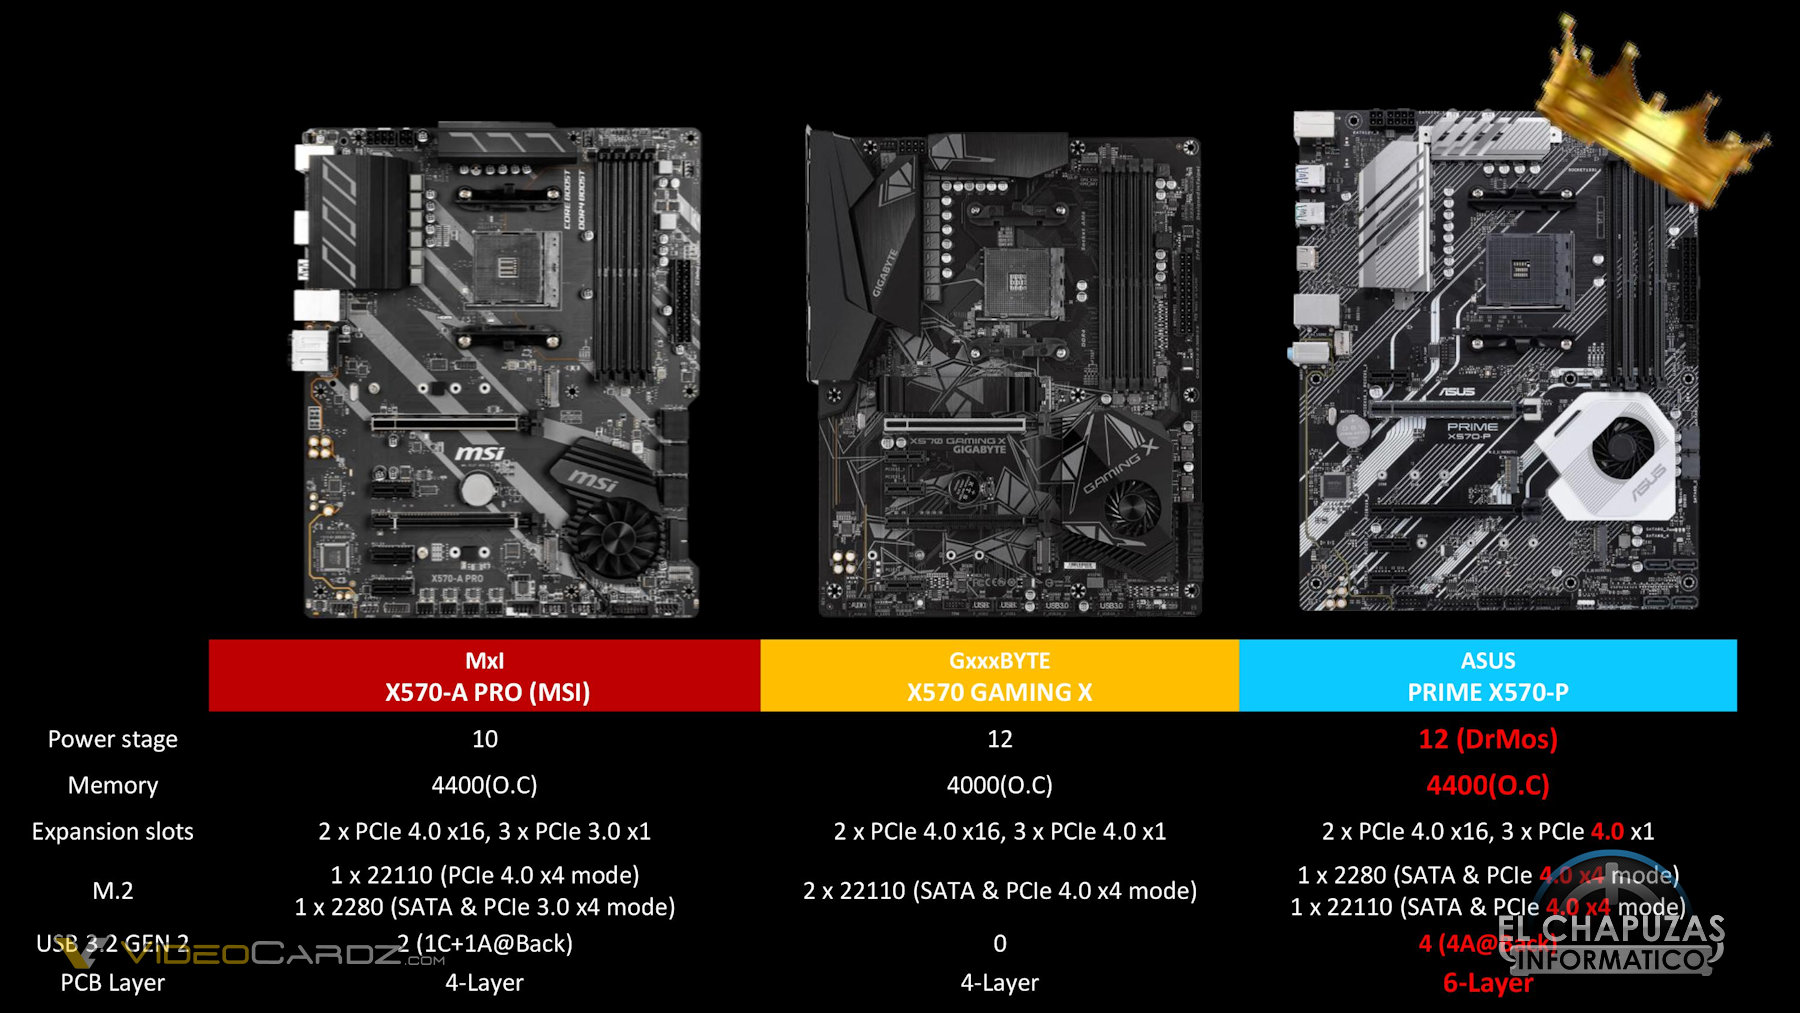 Something GIGABYTE, MSI and AMD do not want you to see